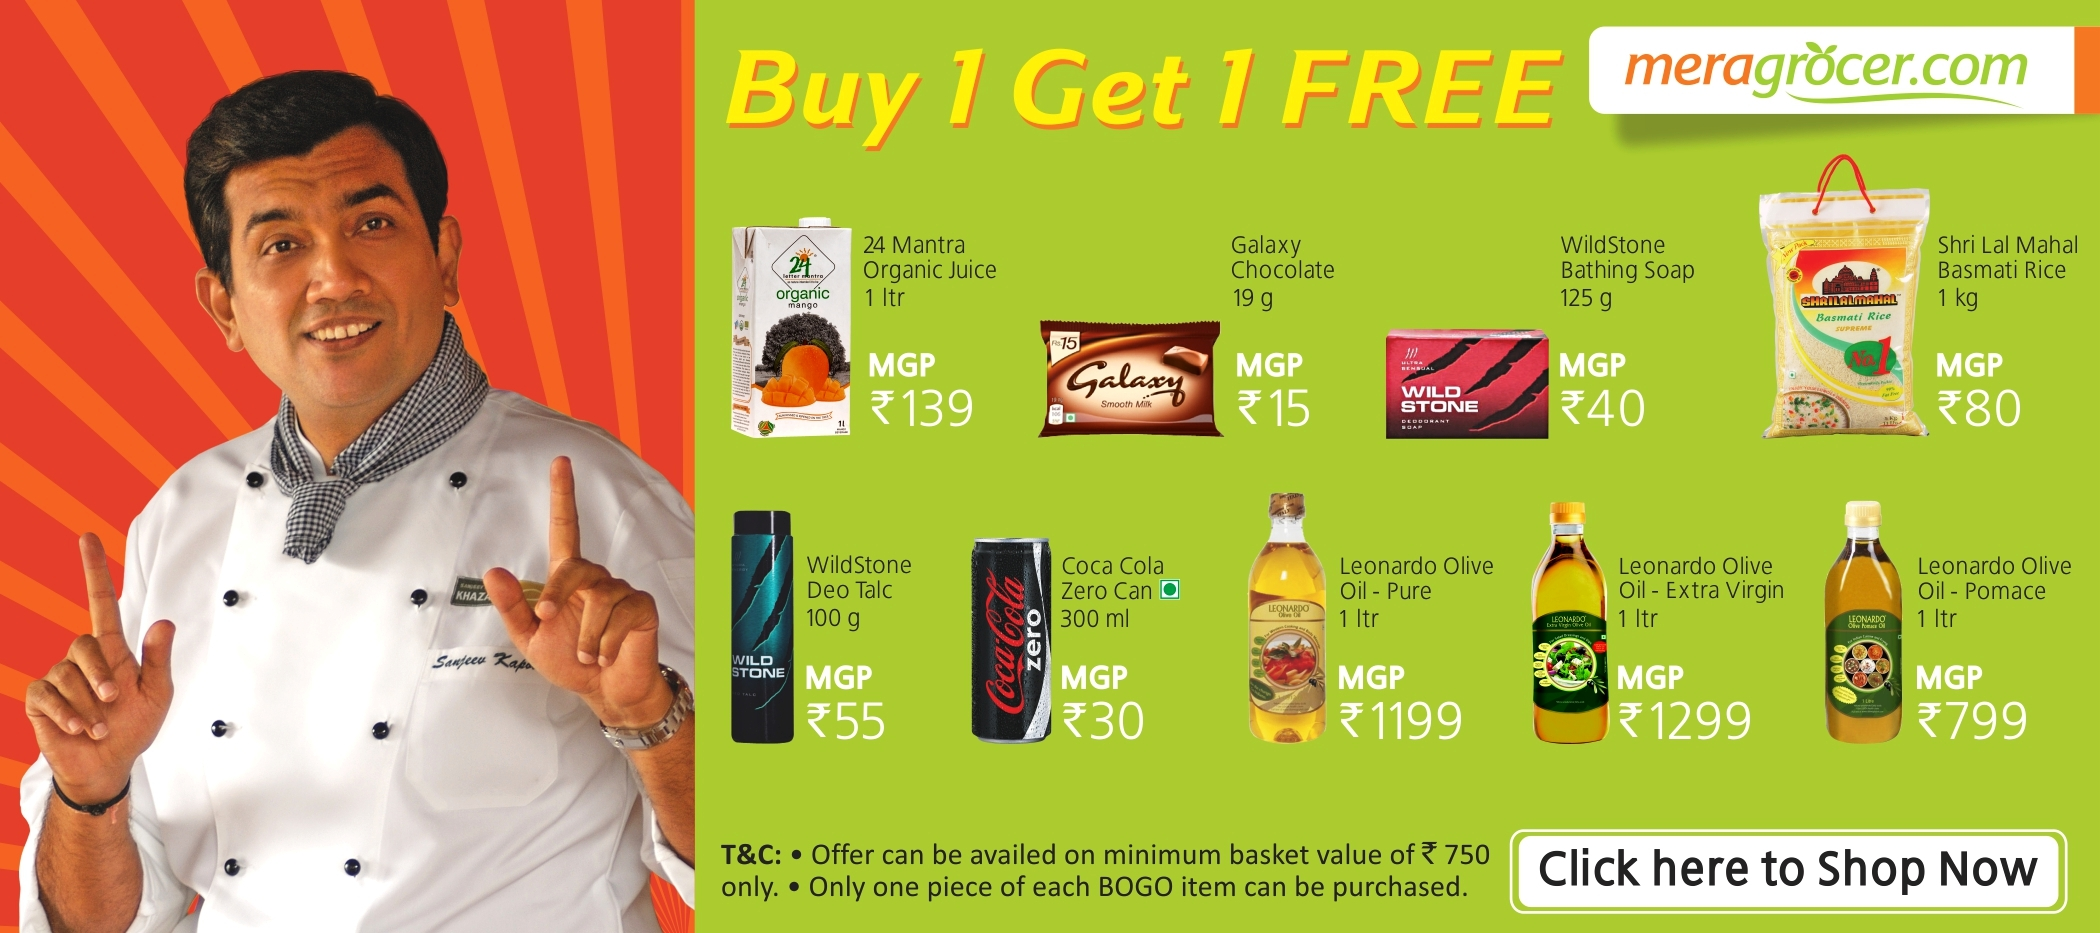 Celebrate Holi with great Discounts on Grocery Shopping from Meragrocer.com